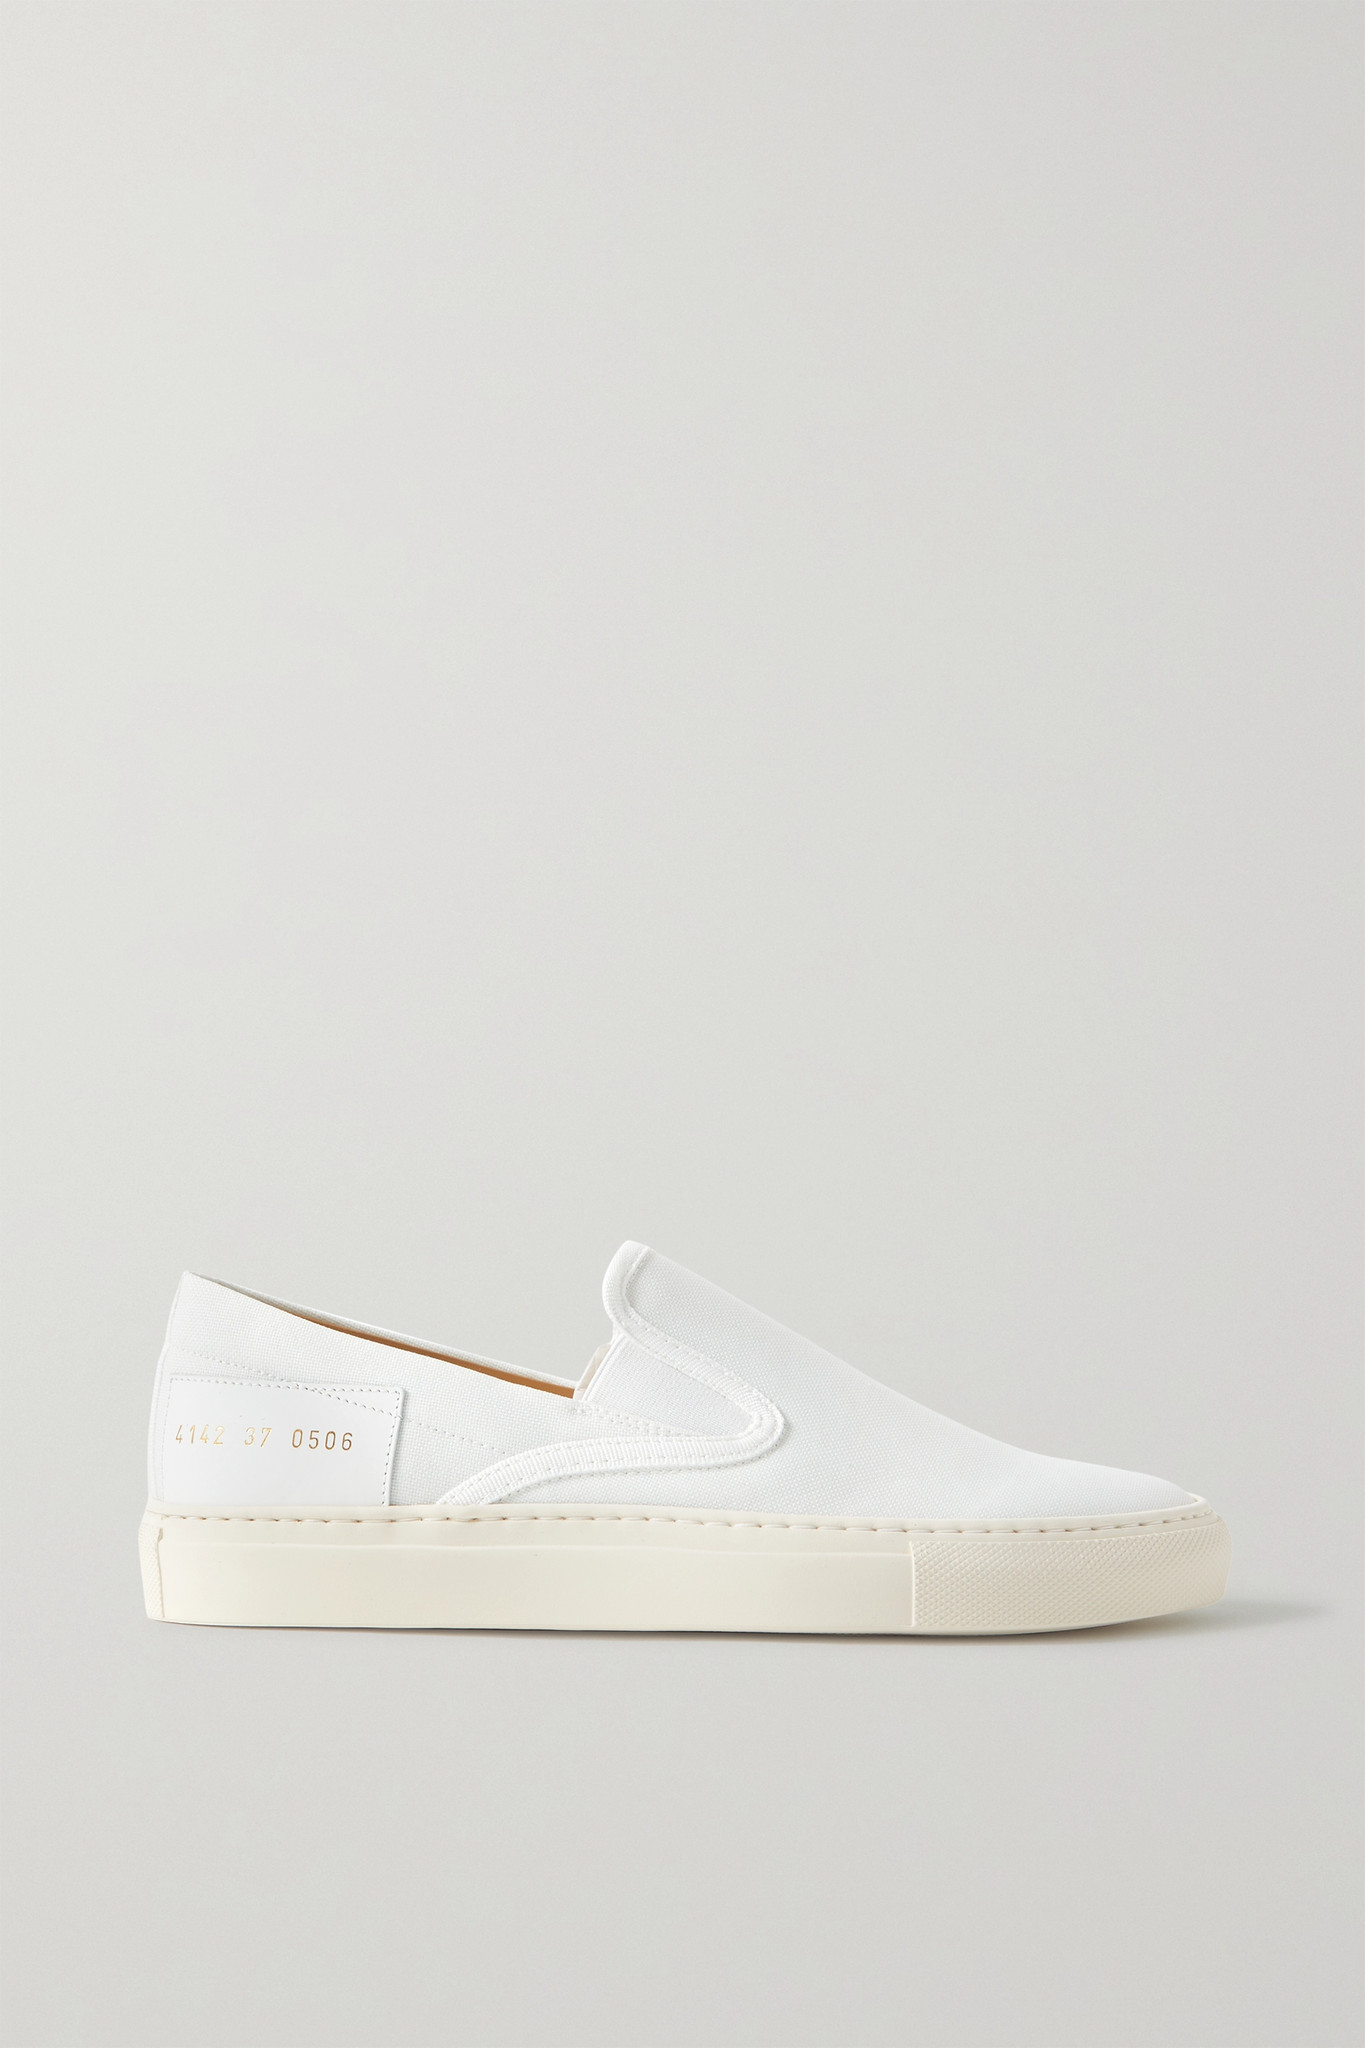 COMMON PROJECTS - Leather-trimmed Canvas Slip-on Sneakers - White - IT35